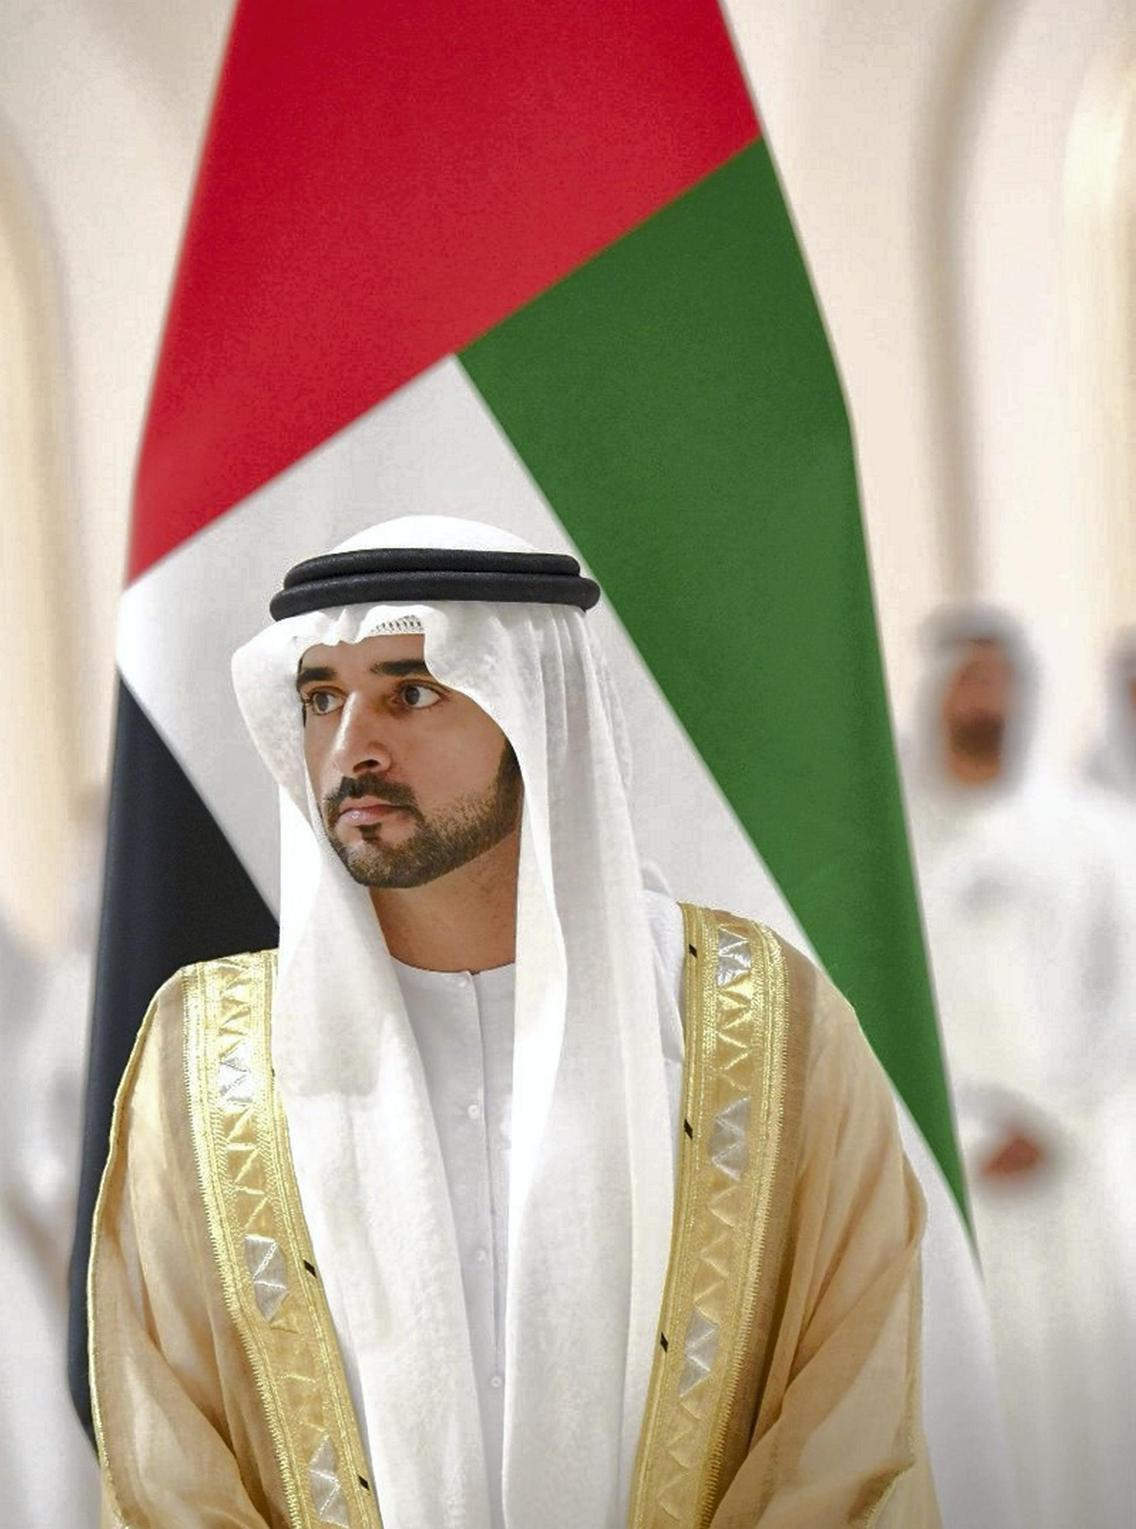 His Highness Sheikh Hamdan, Crown Prince of Dubai